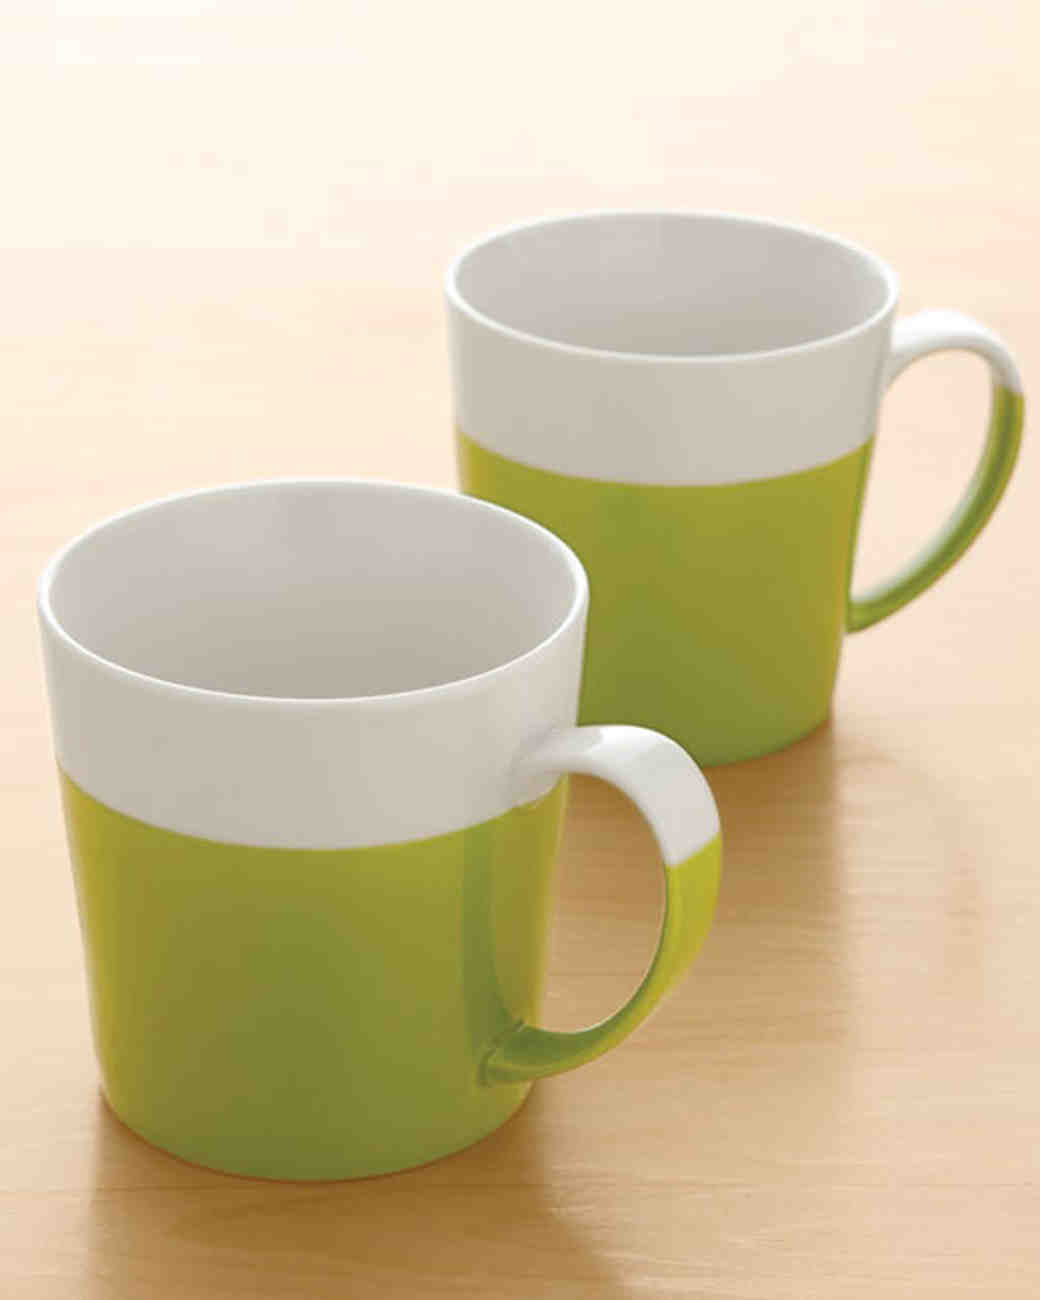 mw106509_spr11_coffeemugs1.jpg